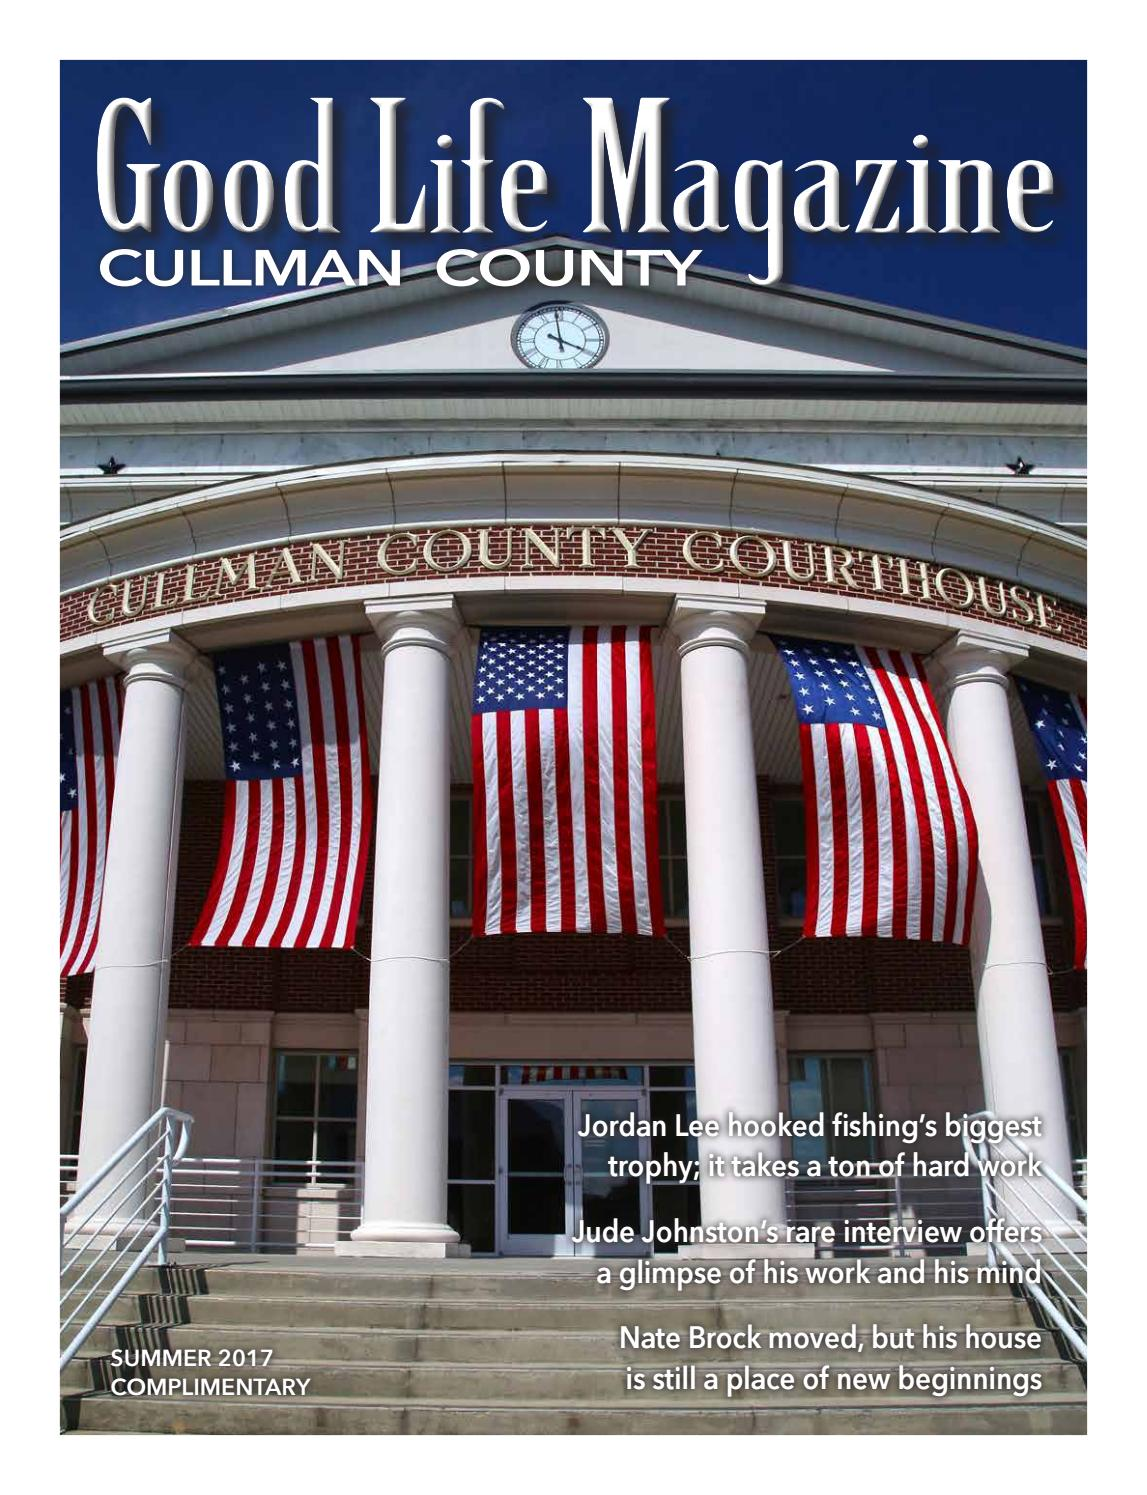 Cullman Good Life Magazine - Summer 2017 by The Good Life Magazine - issuu